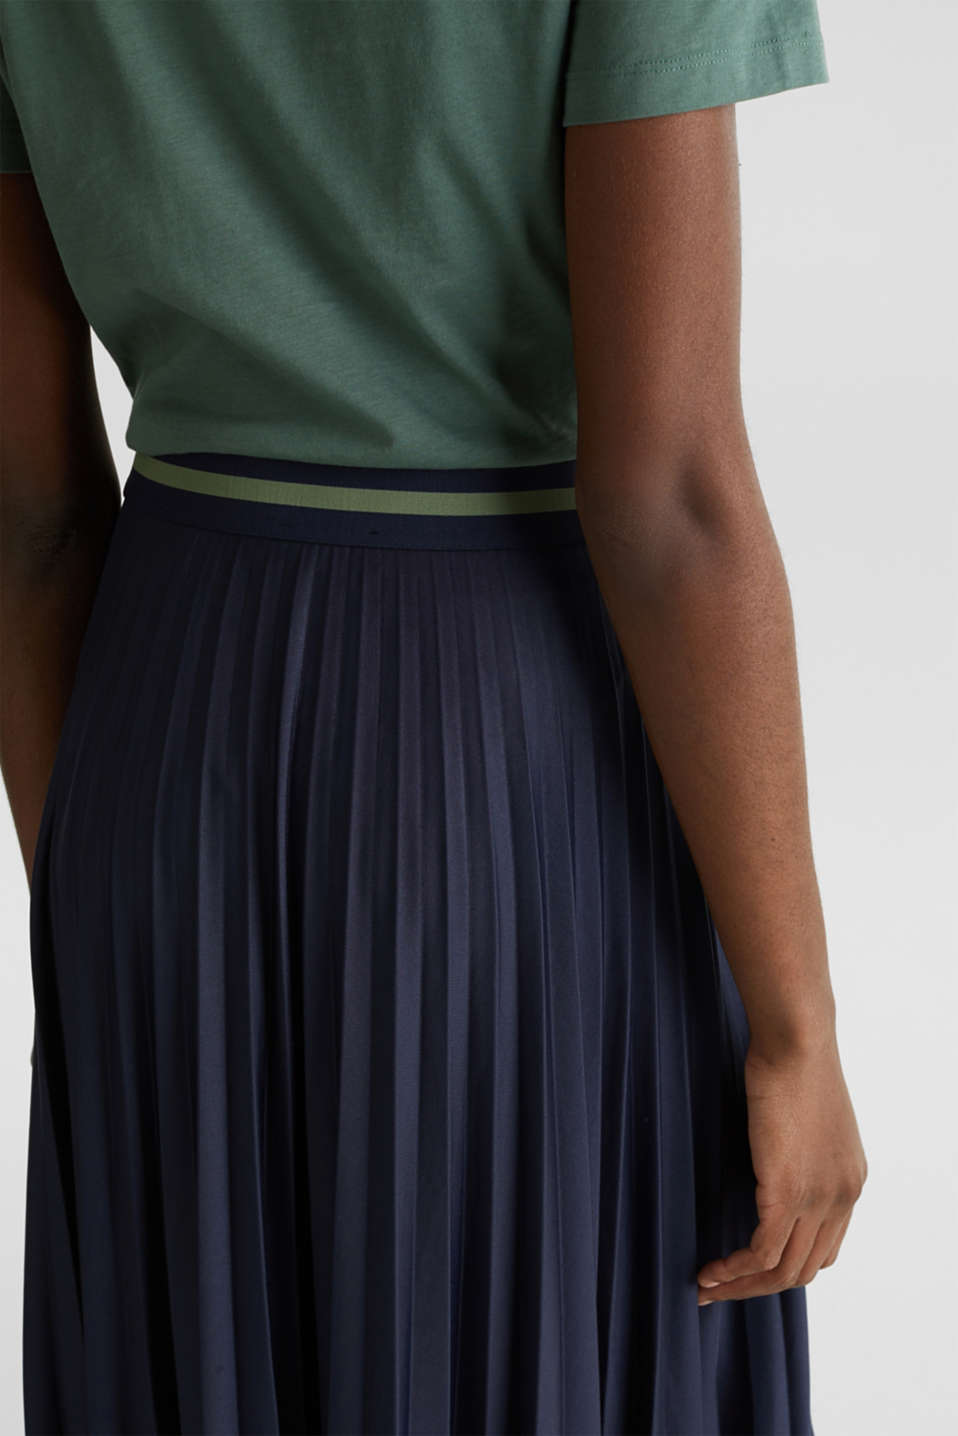 Stretch jersey skirt with accordion pleats, NAVY, detail image number 4